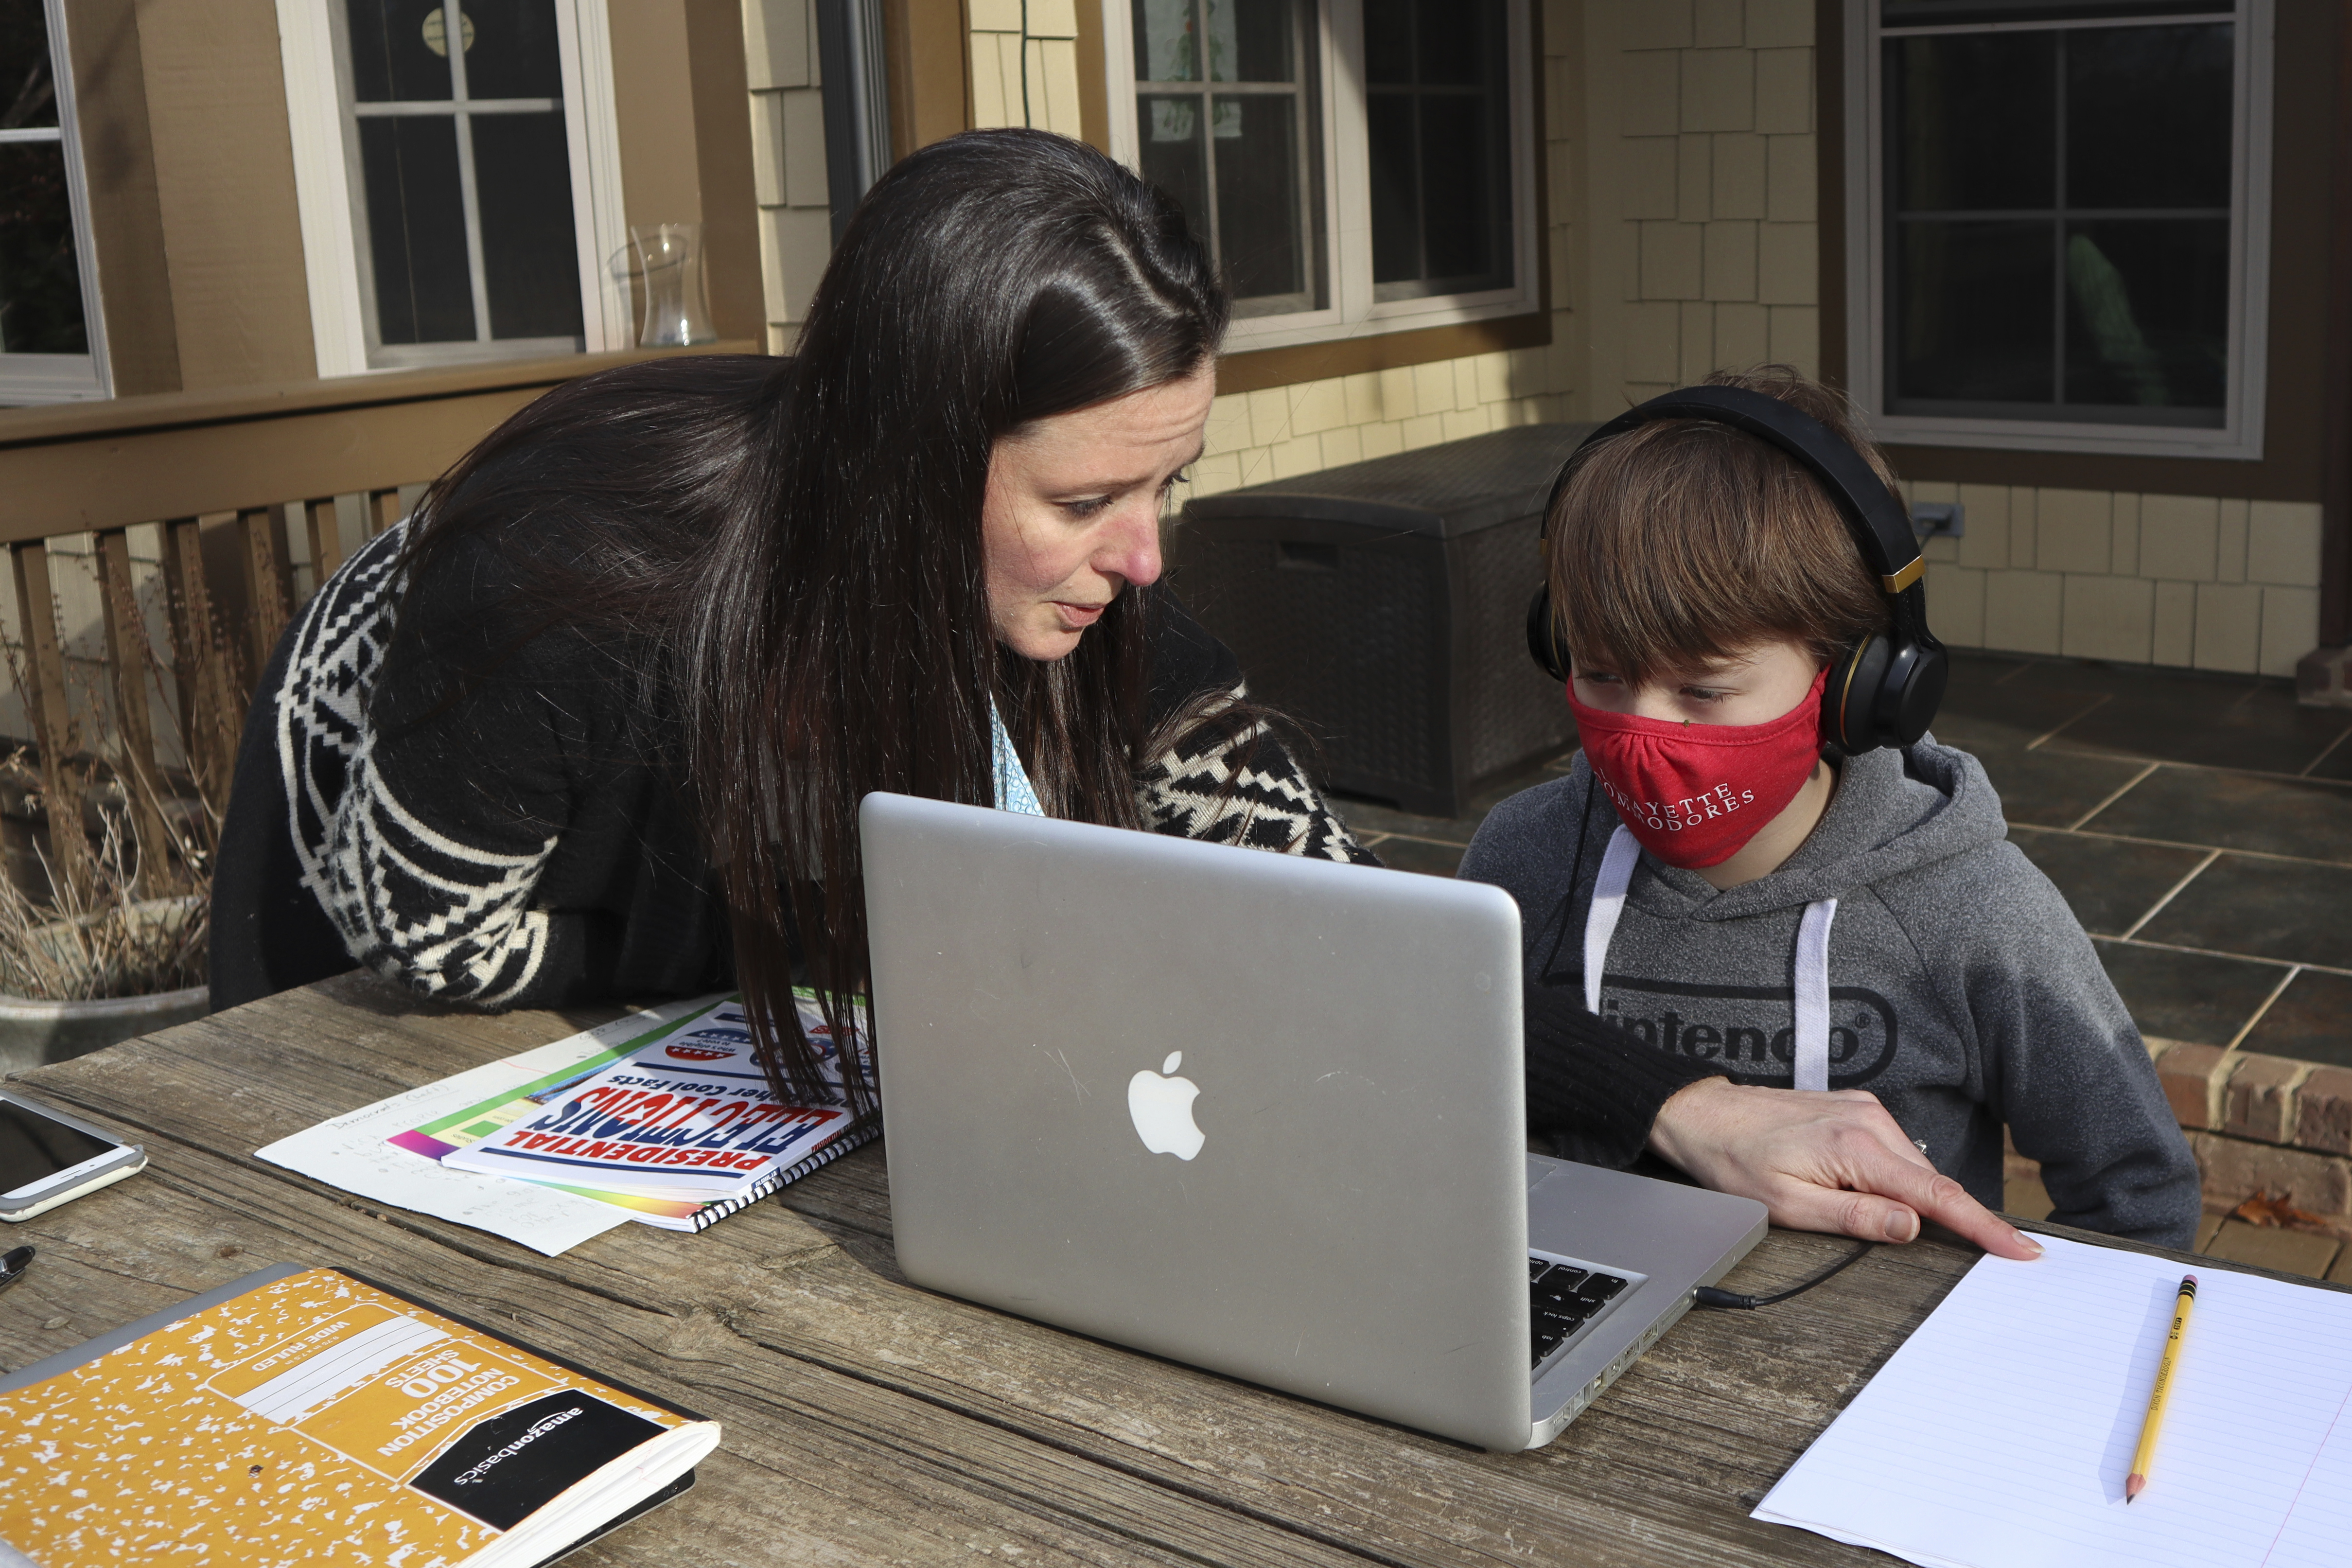 Angela Atkins helps her son Jess Atkins work on a math problem on his laptop during home schooling.